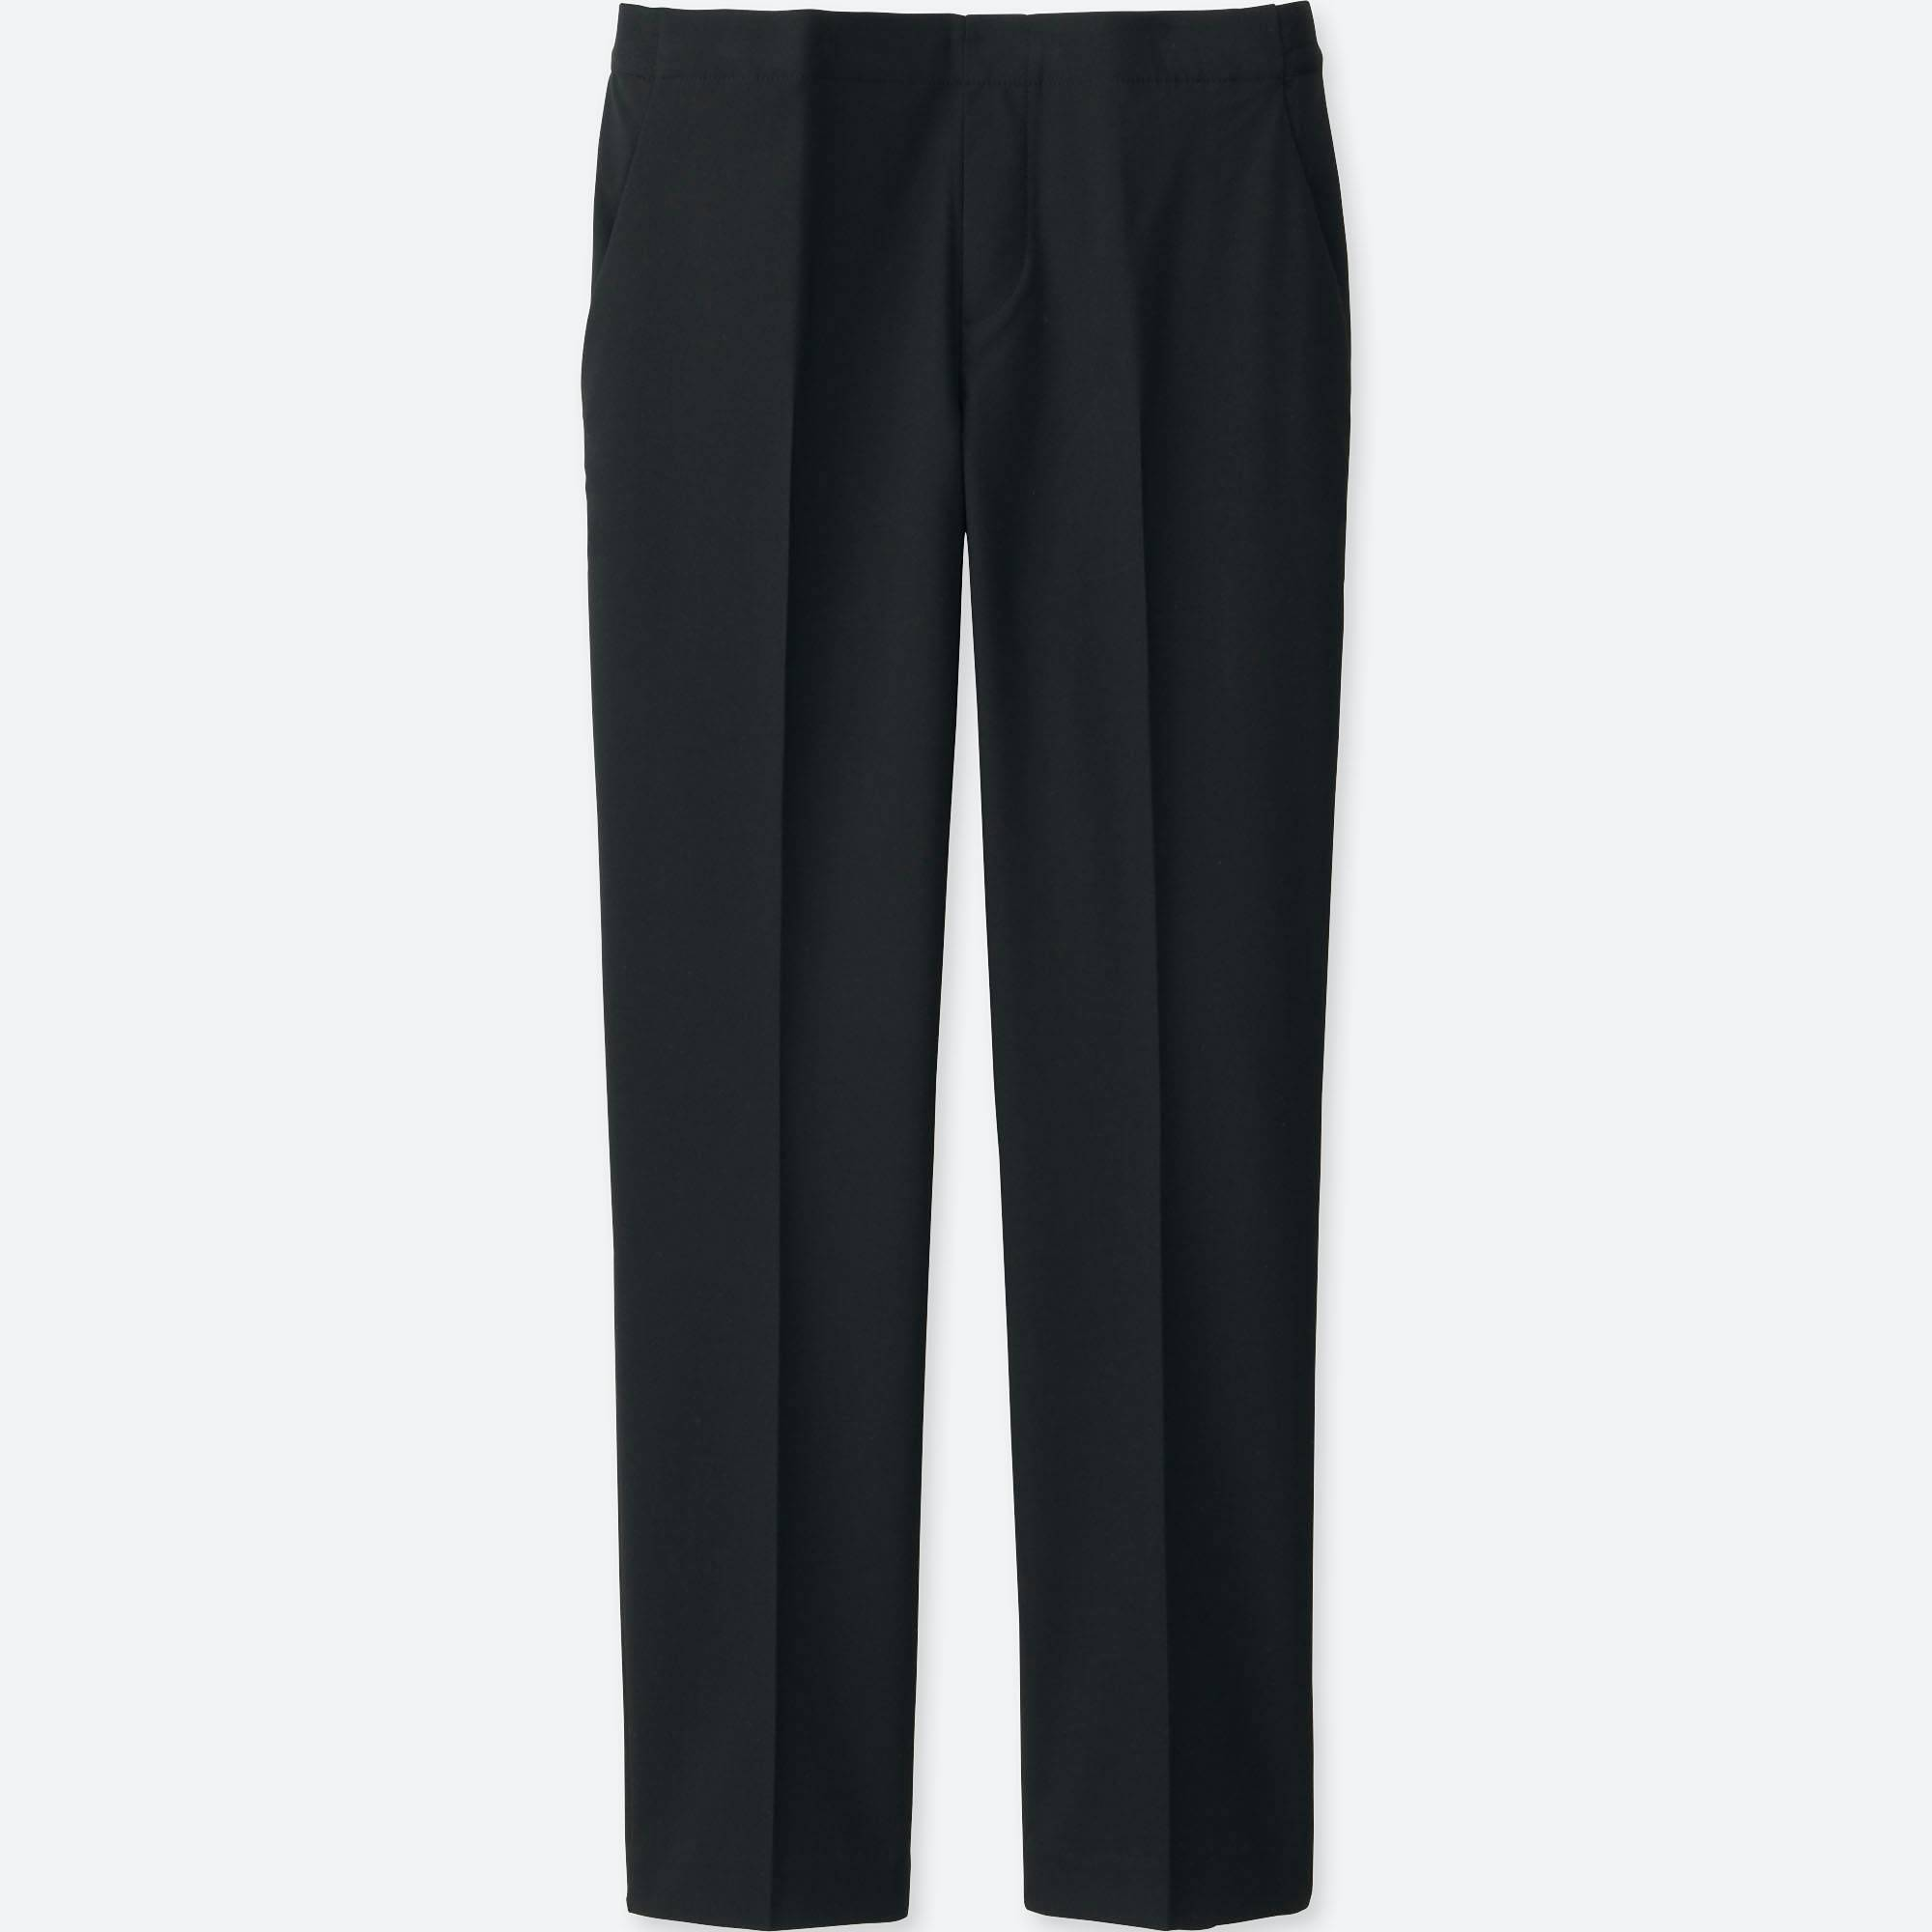 Women's Ankle Length Pants | UNIQLO US